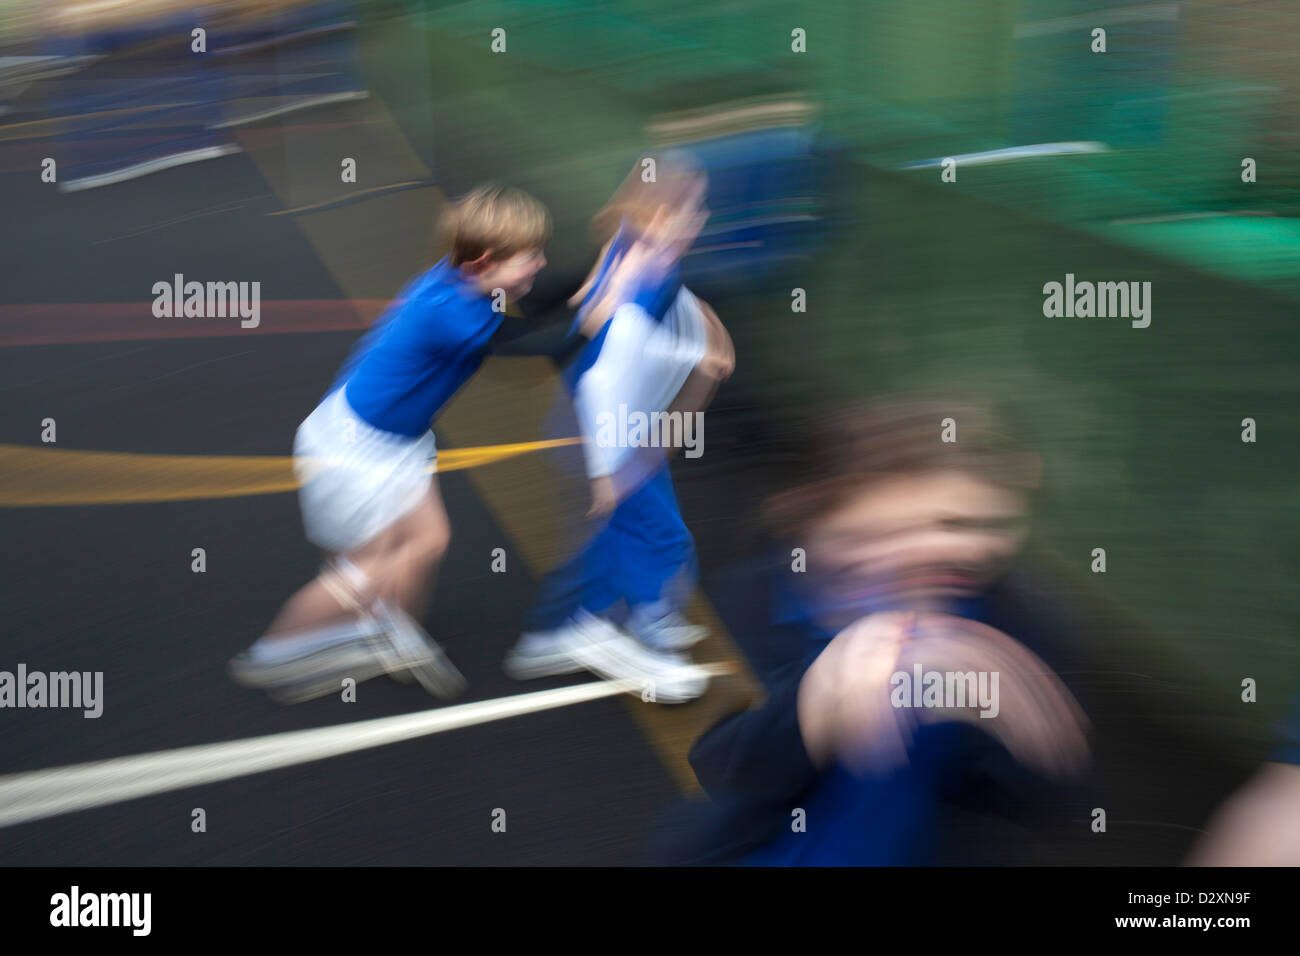 primary school children playing in palyground - Stock Image